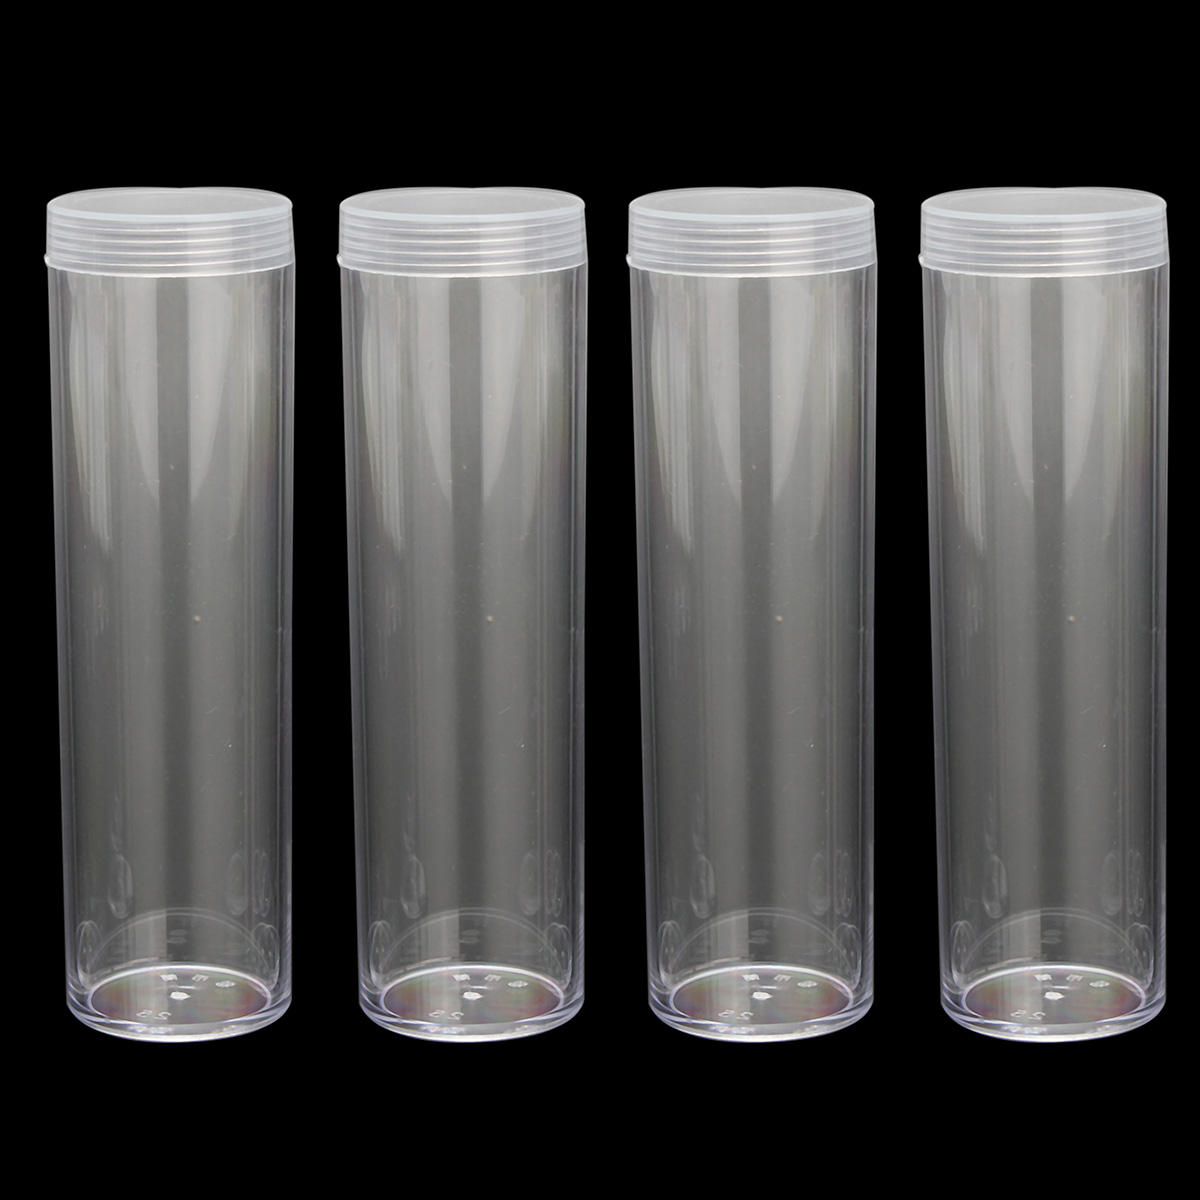 Coin Storage Tubes Dime Size Round Clear Plastic Containers Screw On Caps 10pcs